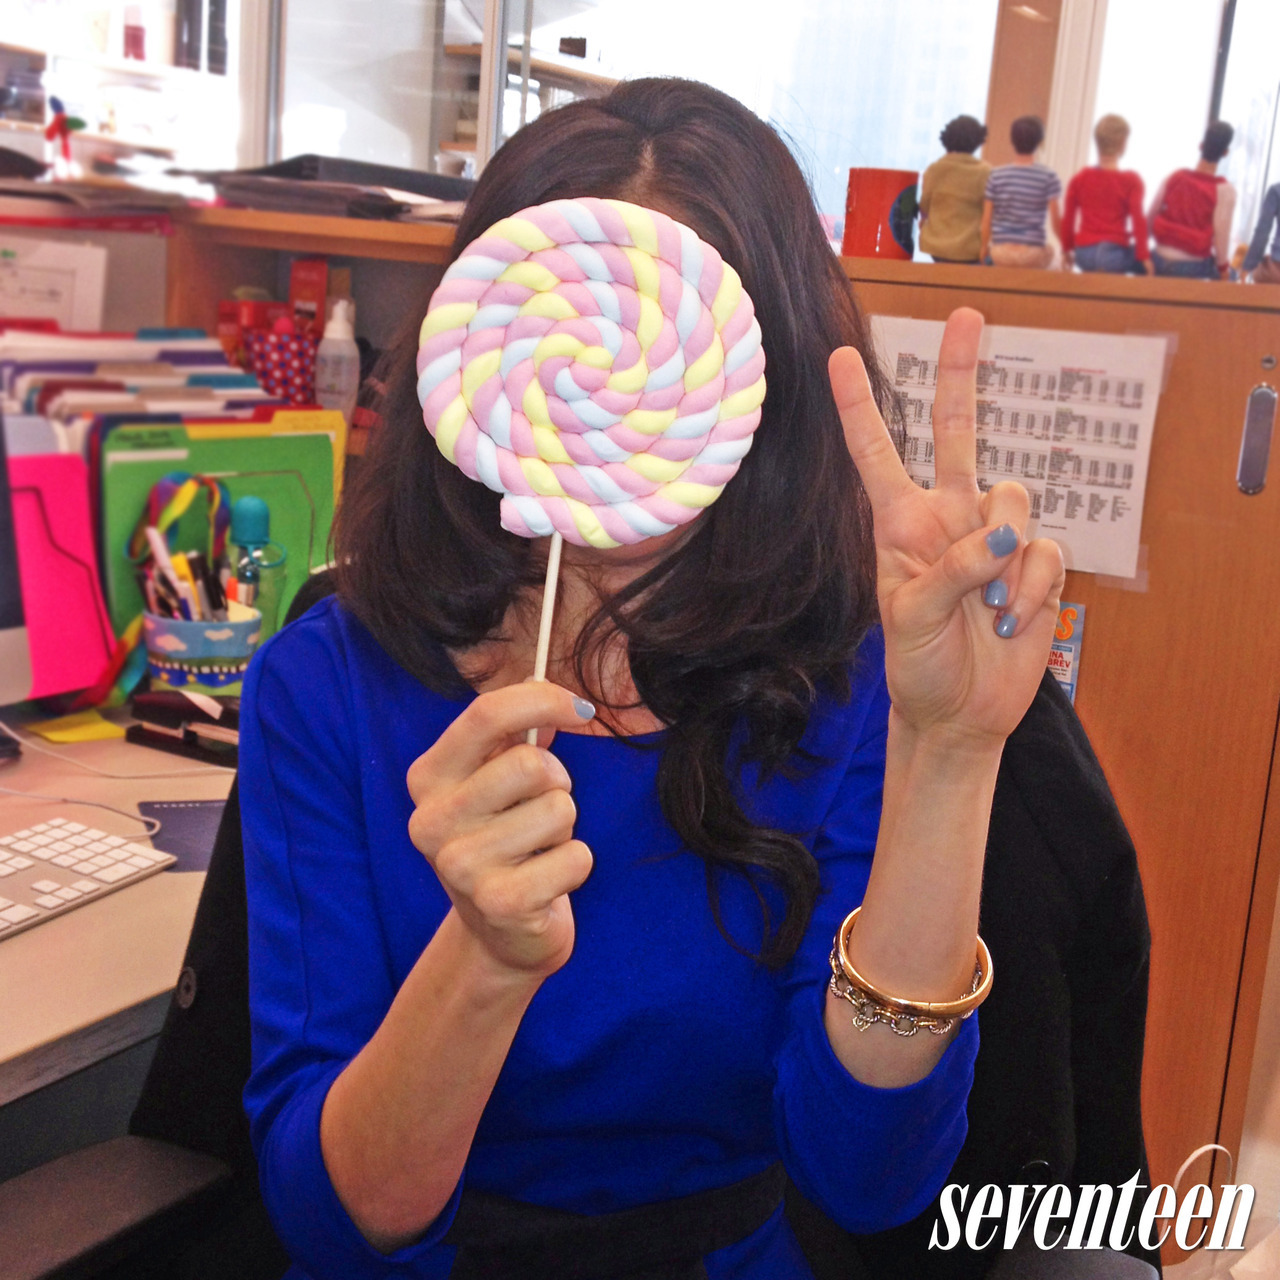 Caught in the act! (Our health editor, Leslie, indulging her sweet tooth).